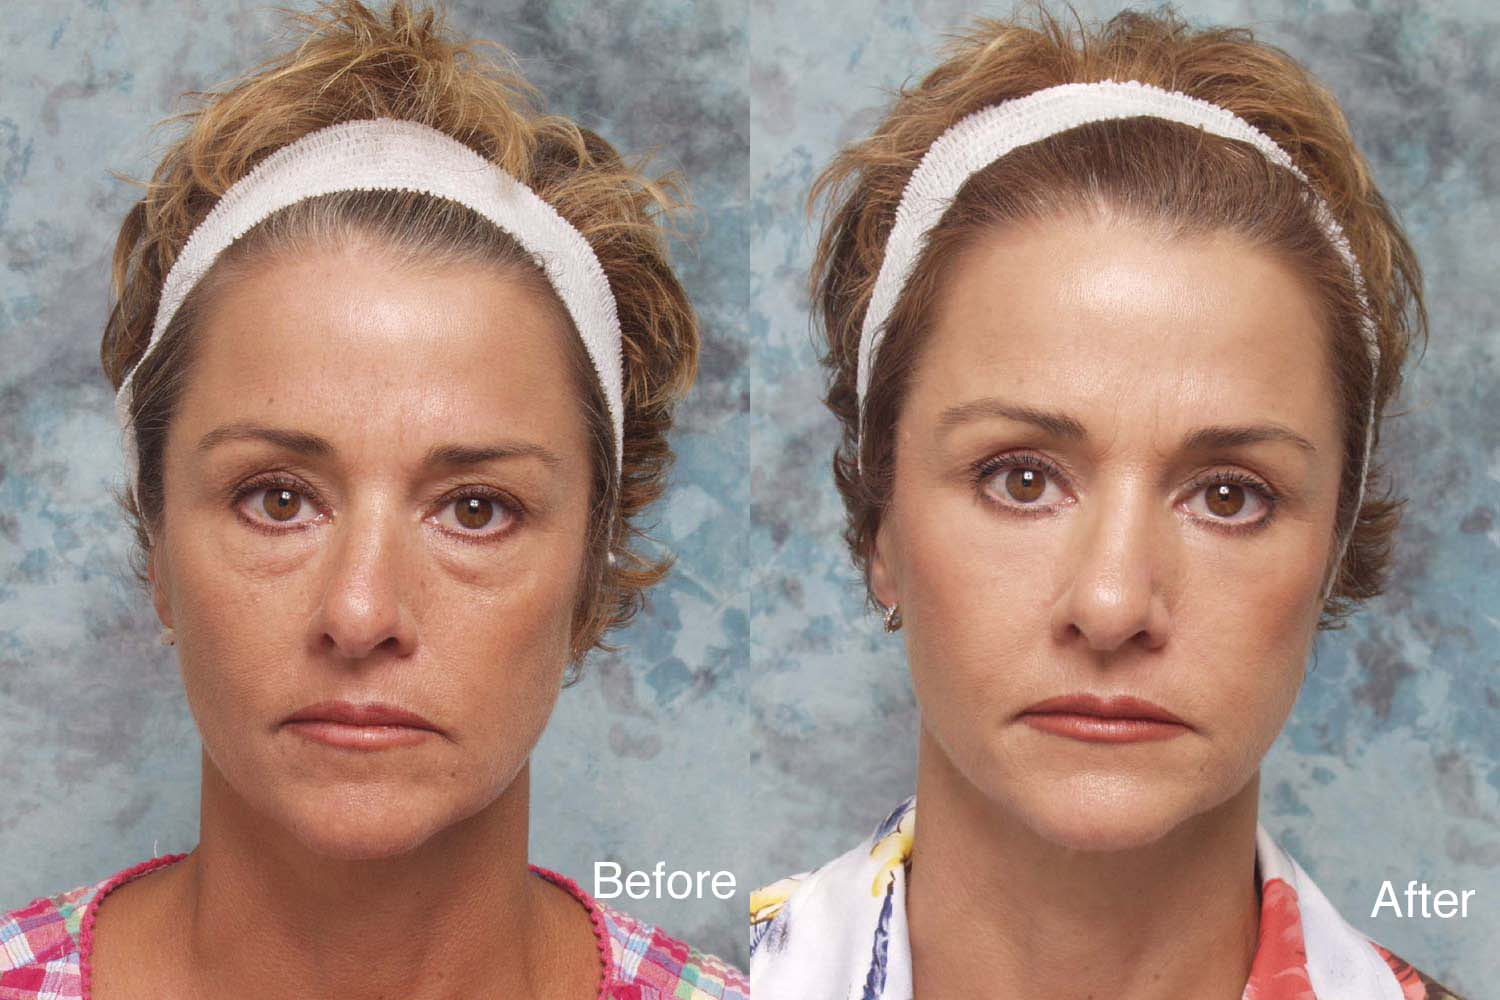 Blepharoplasty Surgery | New Jersey | Eyelid Surgery |Lower Blepharoplasty Recovery Photos